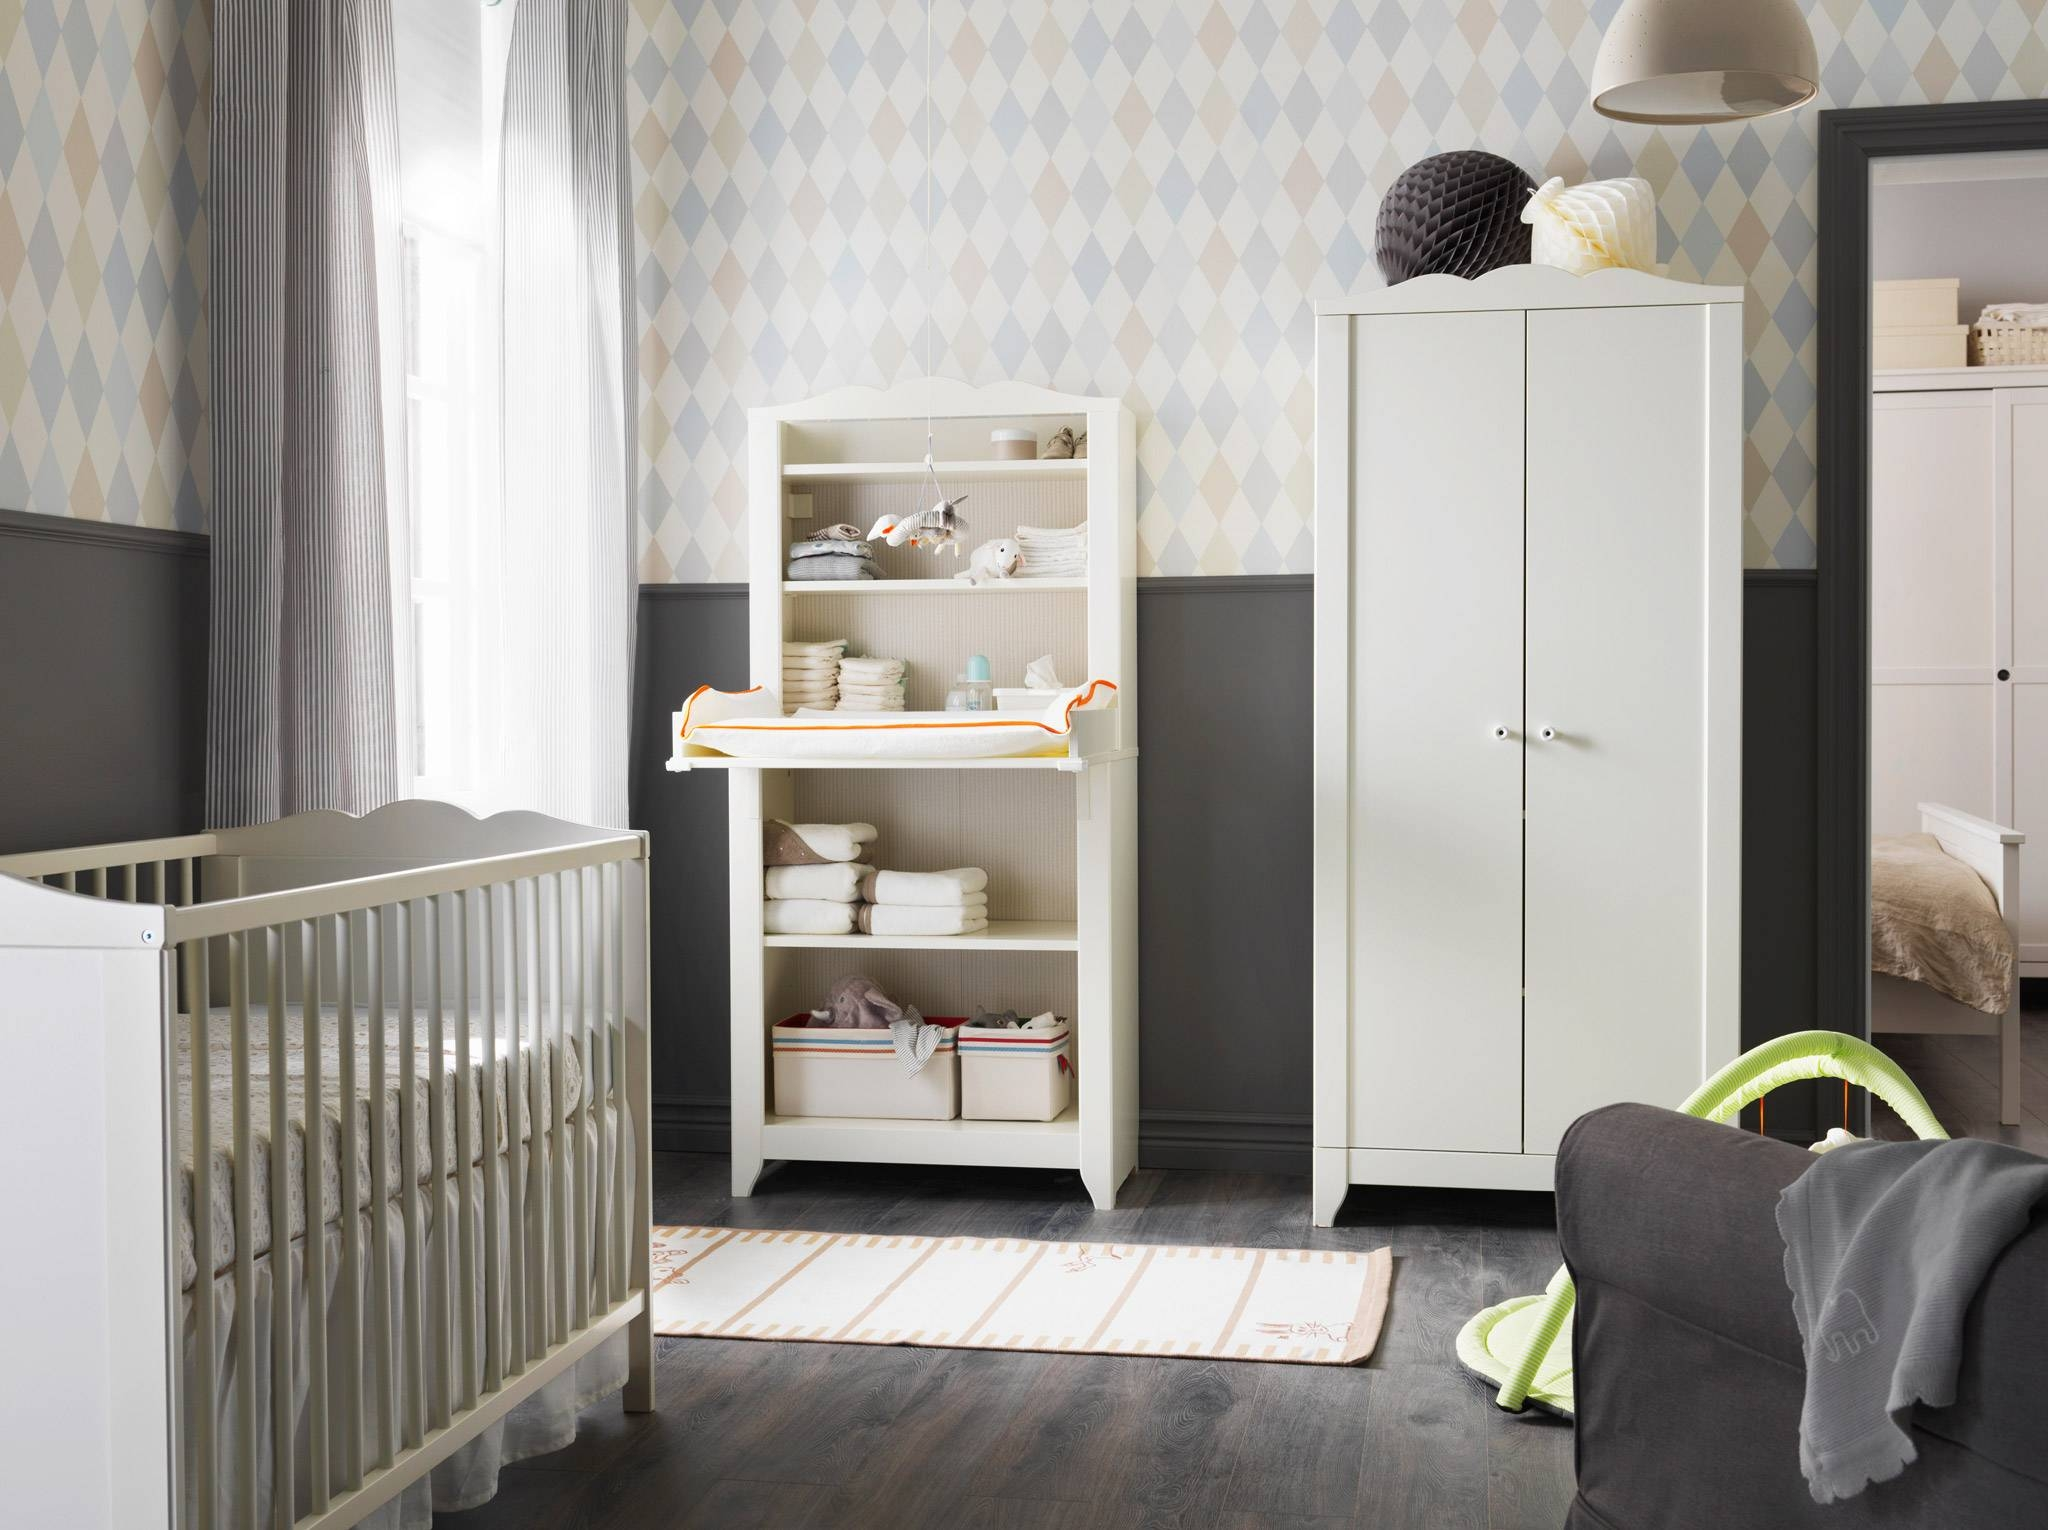 Childrens Furniture & Childrens Ideas | Ikea Ireland intended for Childrens Wardrobes With Drawers And Shelves (Image 11 of 30)